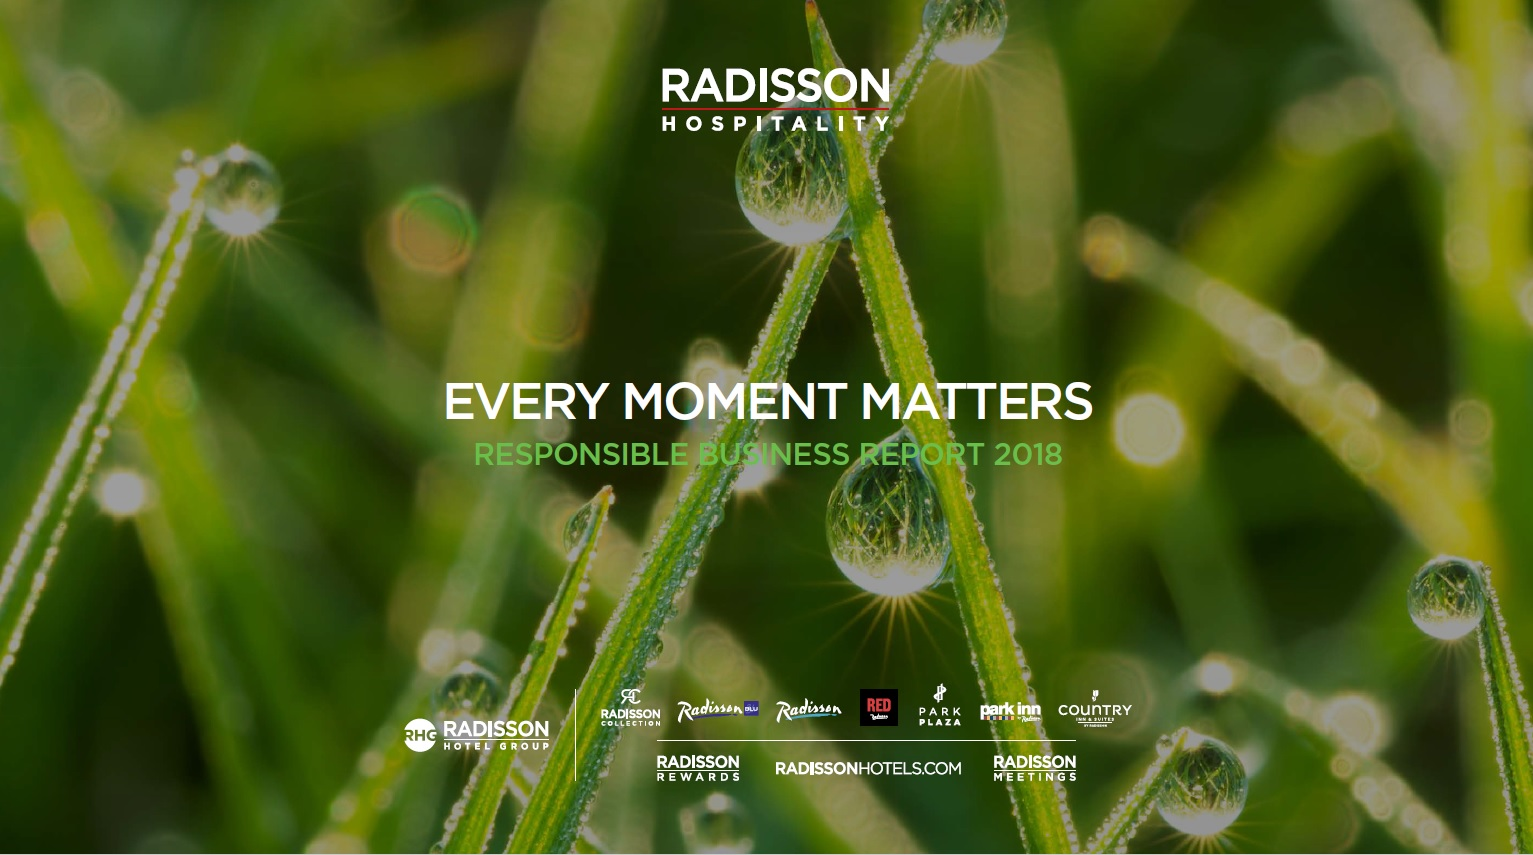 Radisson-2018SustainabilityReport-frontpage.jpg